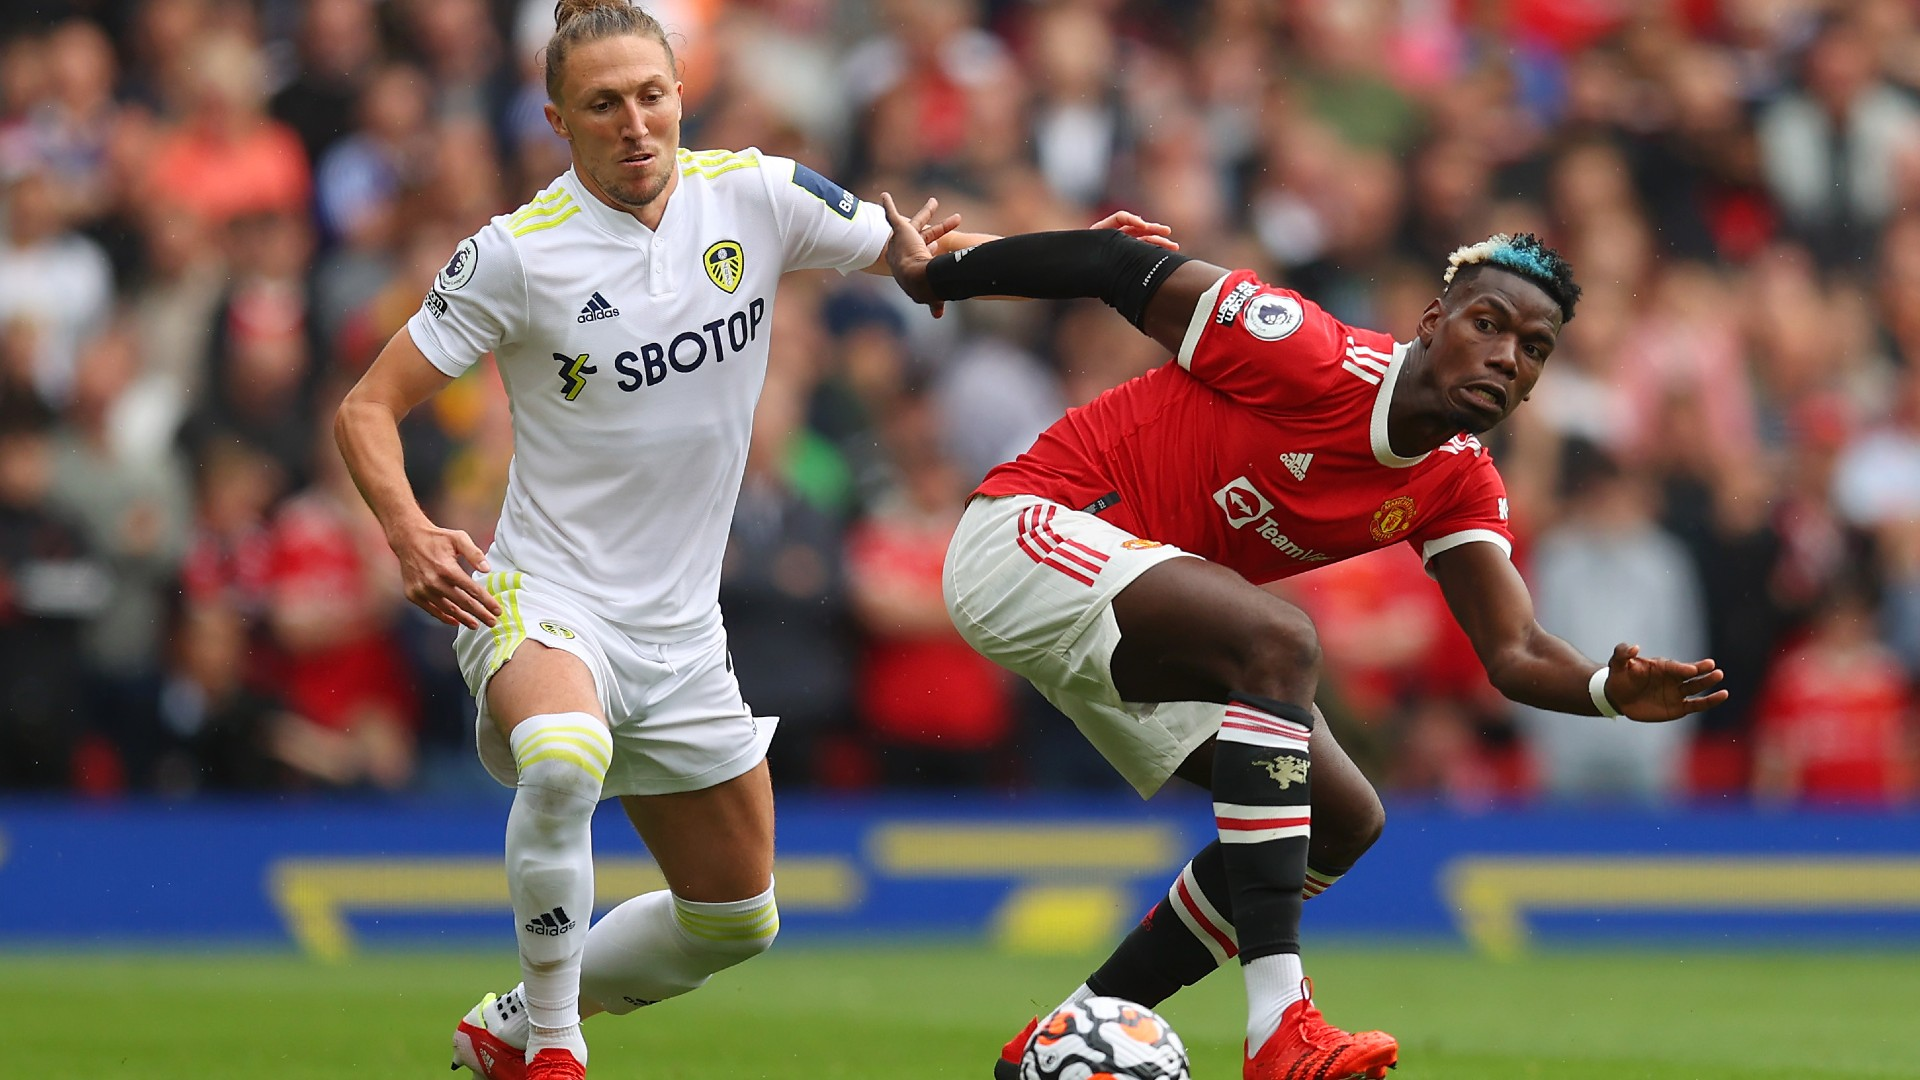 Solskjaer hopes fan support can persuade Pogba to stay at Manchester United